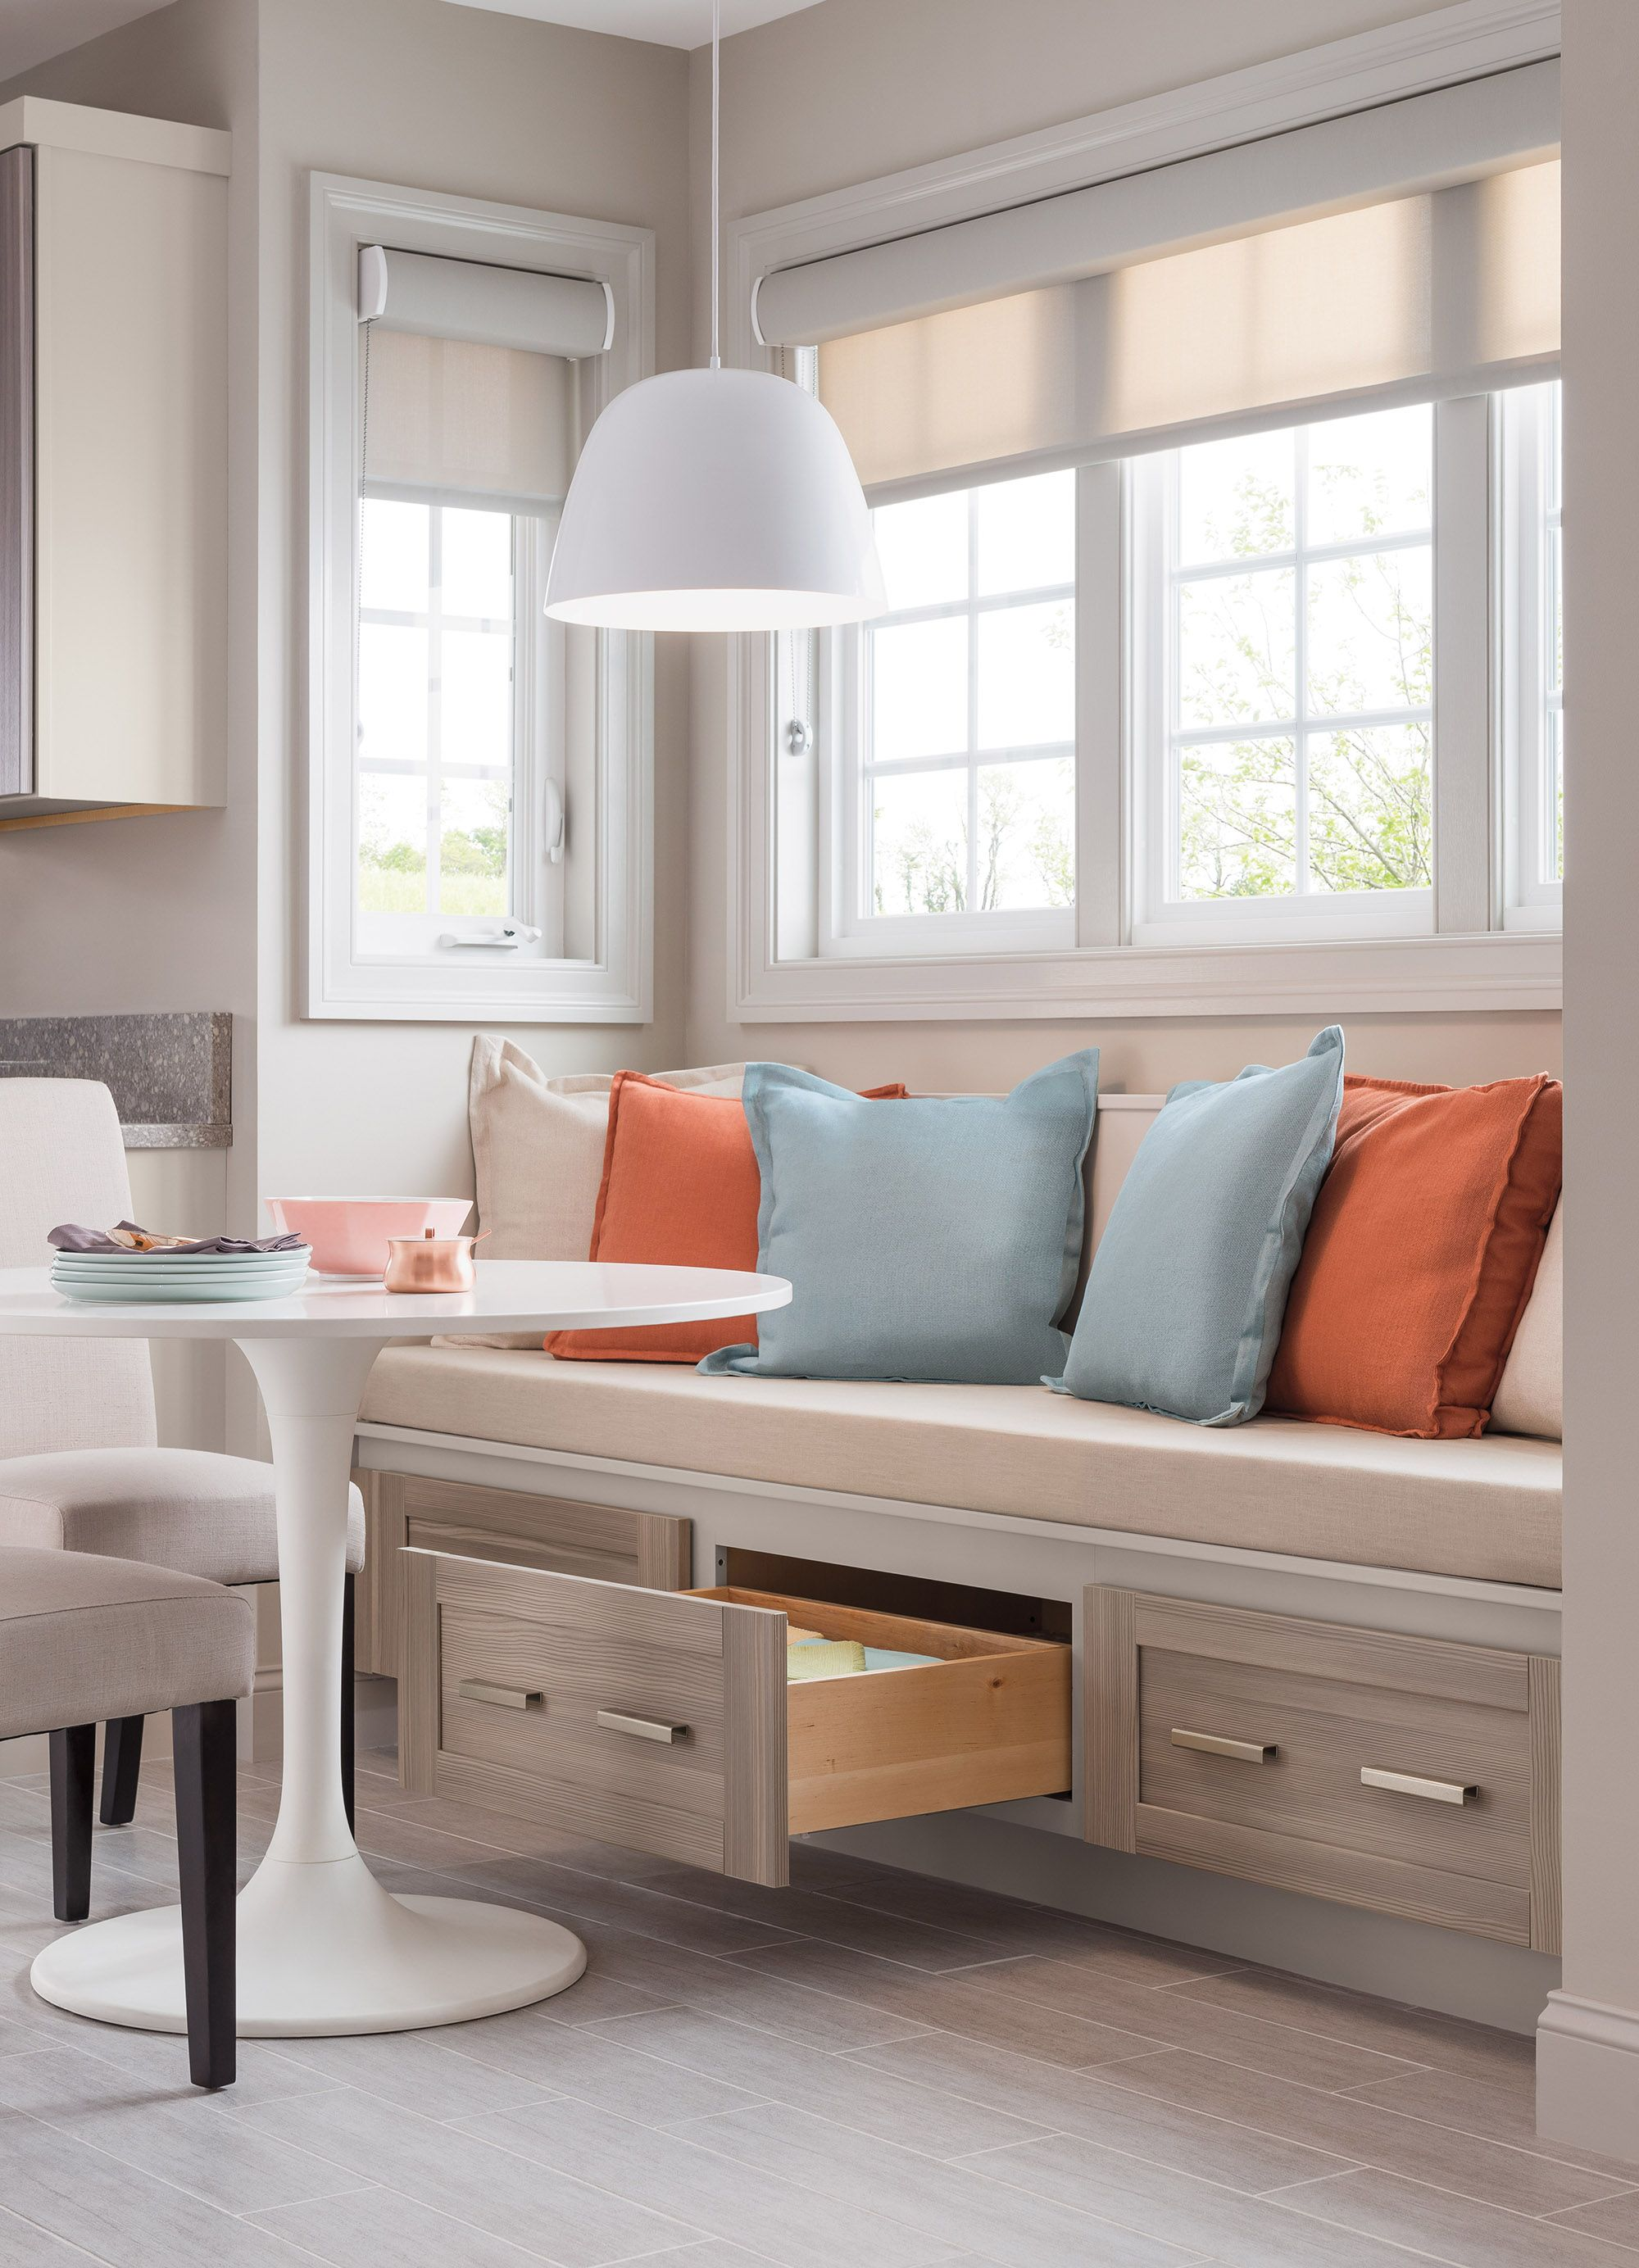 Double up with storage and seating kitchens and dining for Kitchen table bench seat